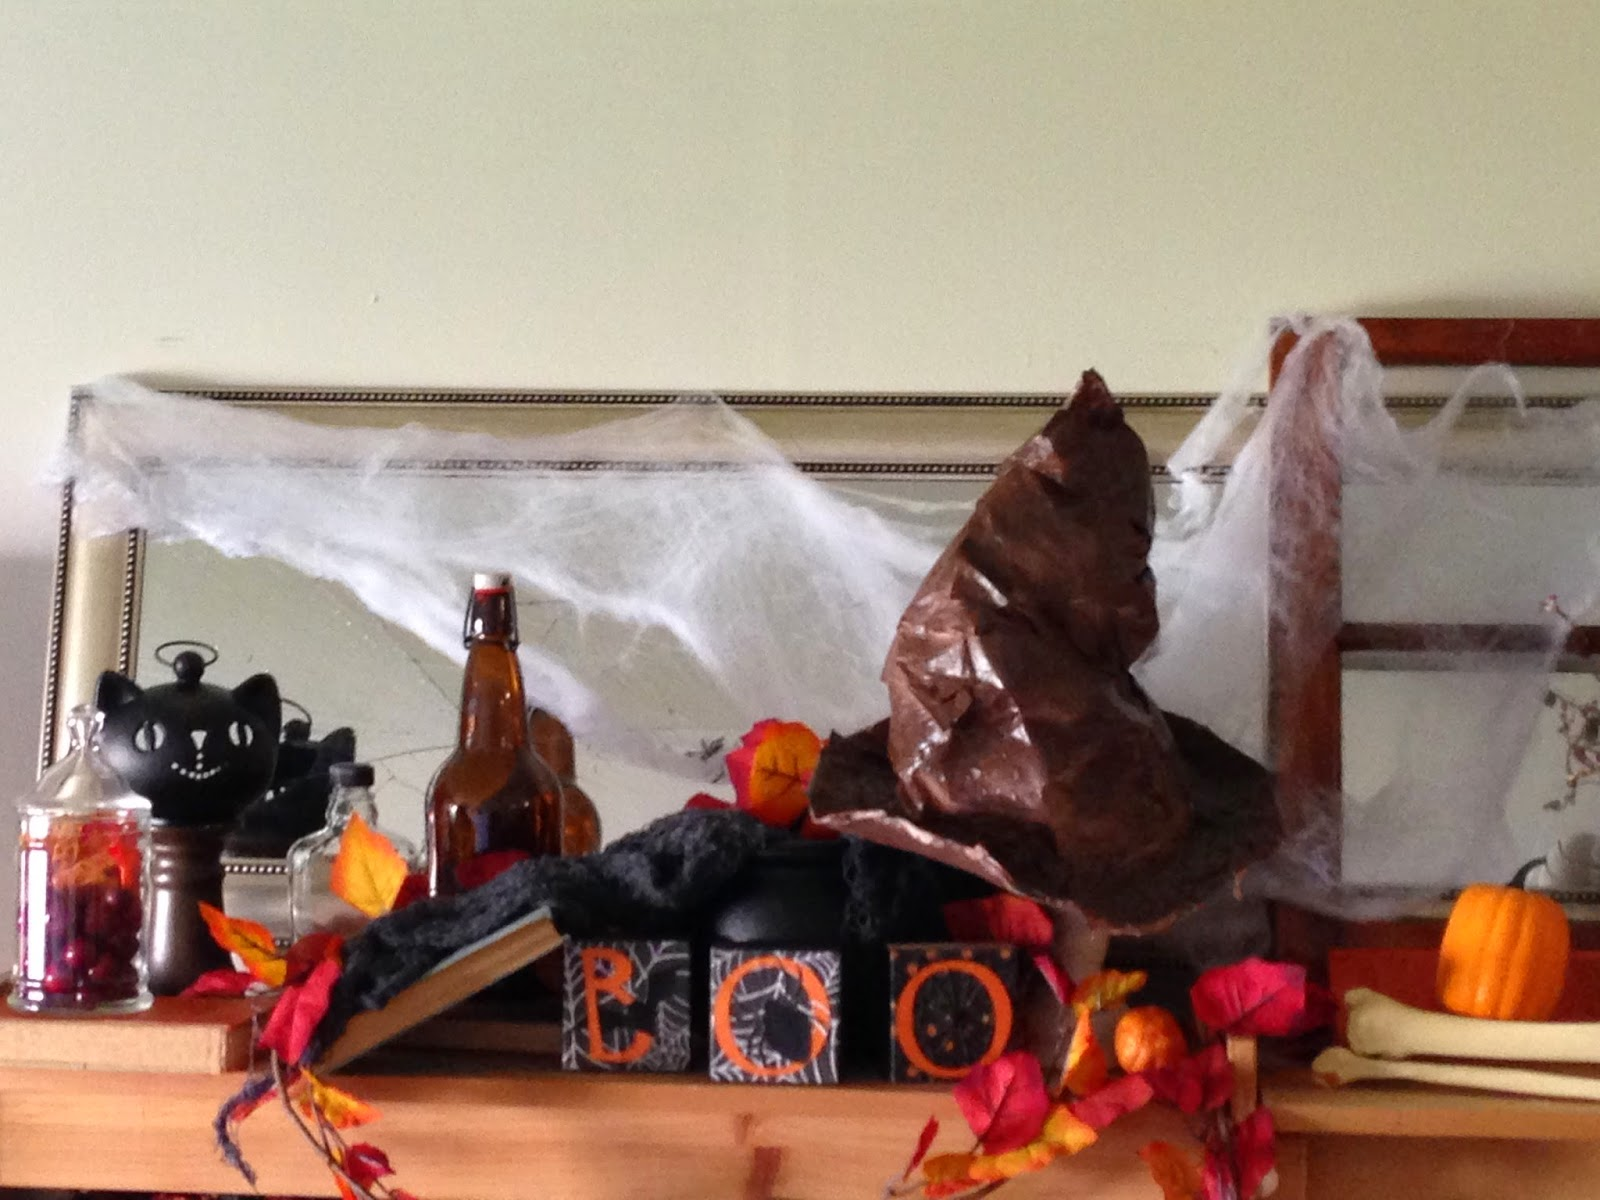 Halloween Home Display...by my nine-year old! See her creative genius! #halloween #homedecor #decorations